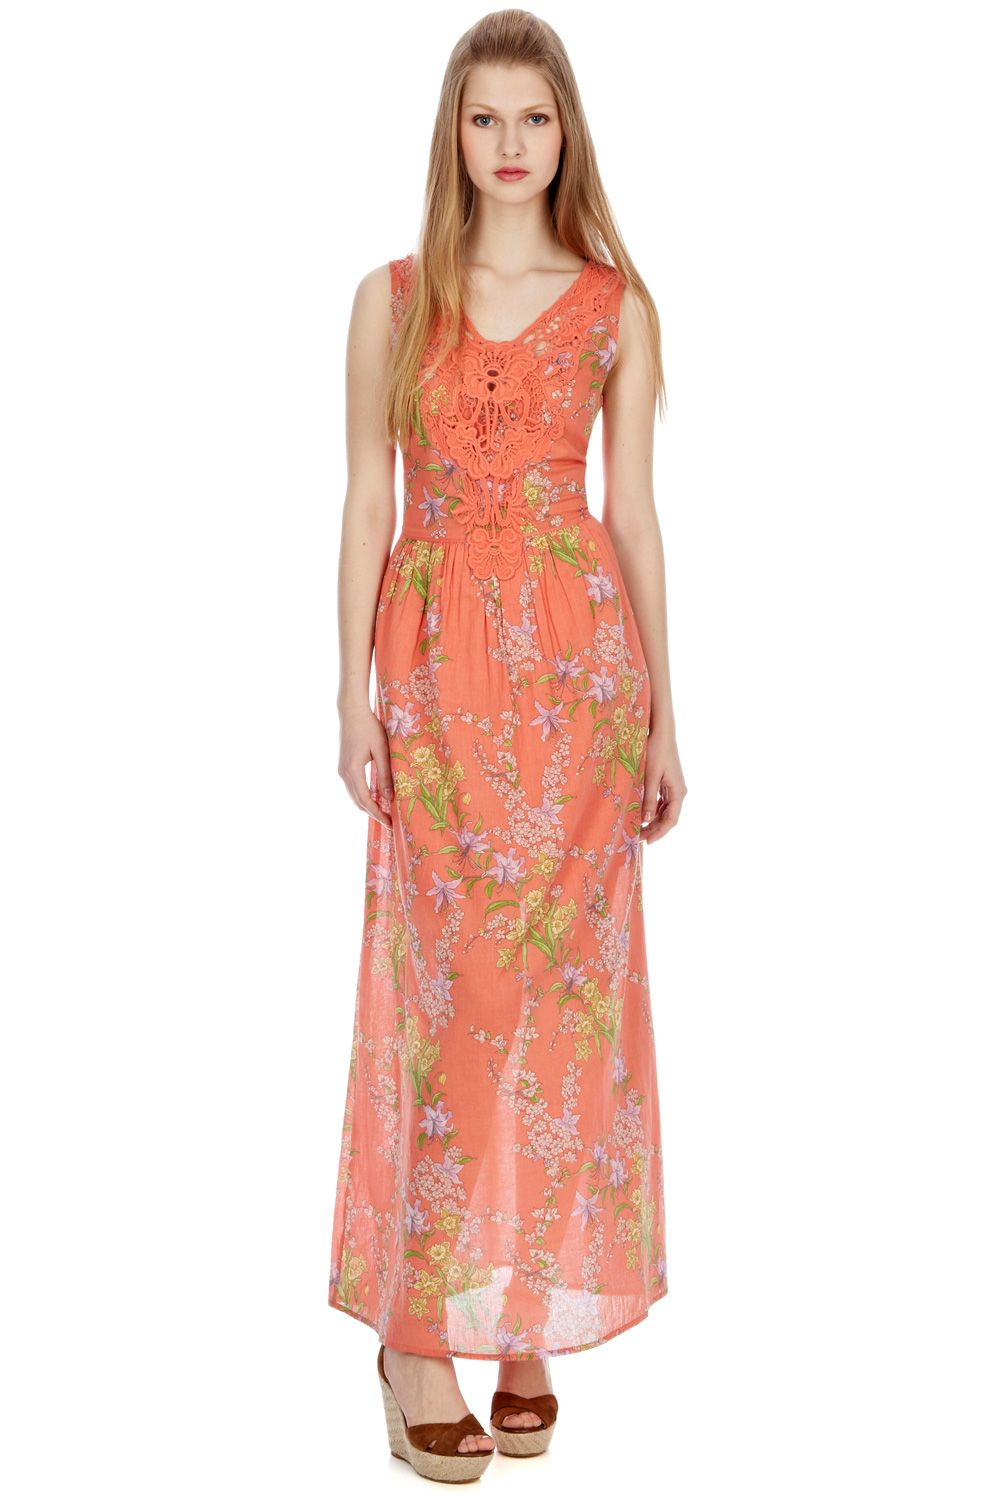 Botanical cotton maxi dress